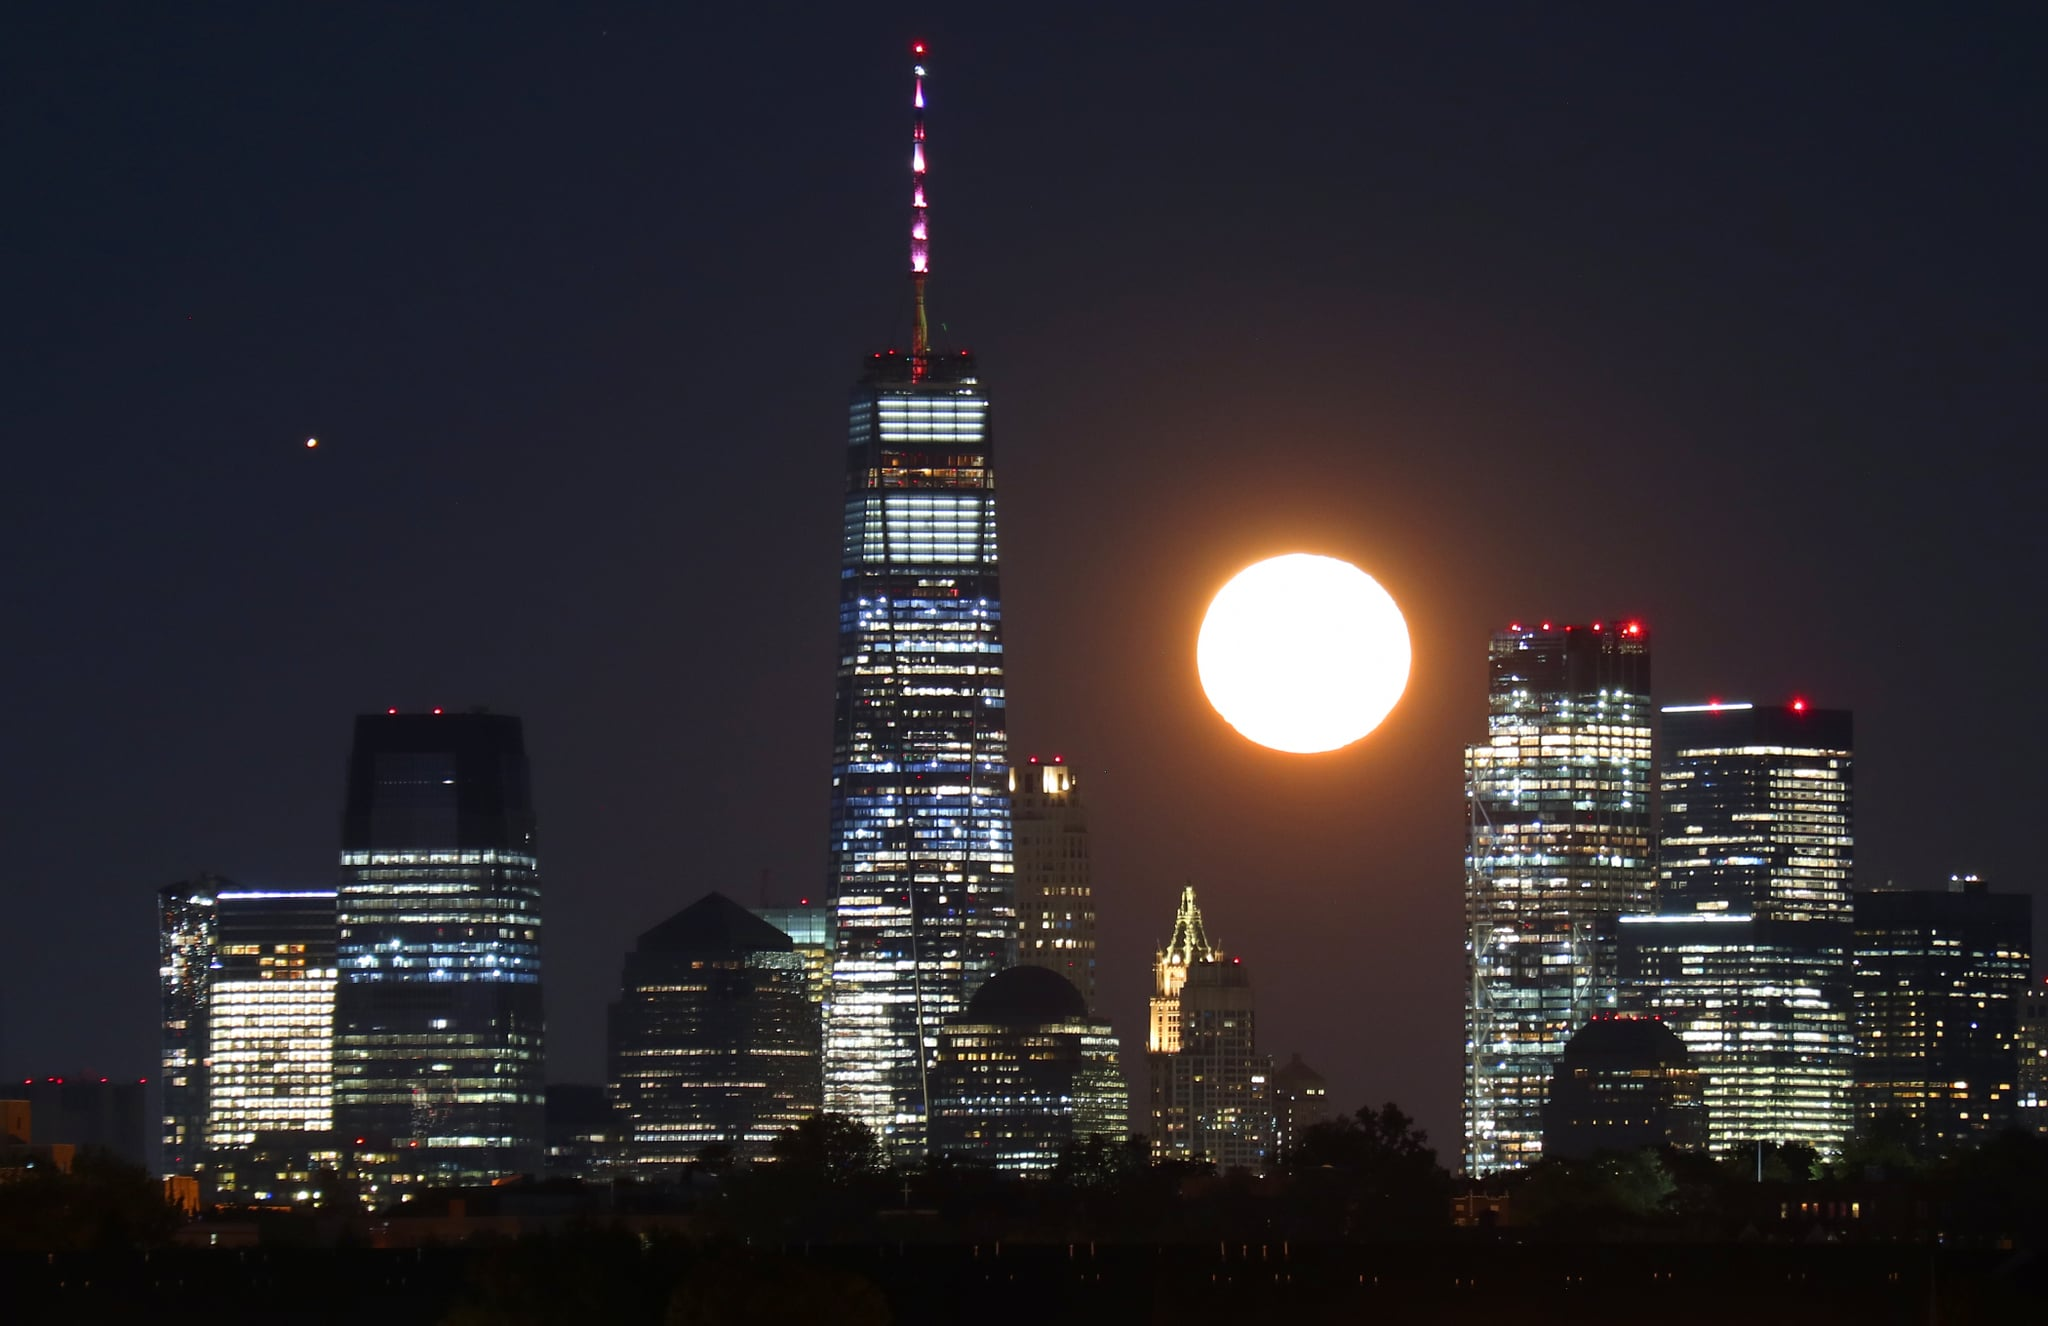 NEWARK, NJ - OCTOBER 2: The moon rises along with Mars behind lower Manhattan and One World Trade Center in New York City, a day after the full Harvest Moon on October 1, 2020 as seen from Newark, New Jersey. (Photo by Gary Hershorn/Getty Images)